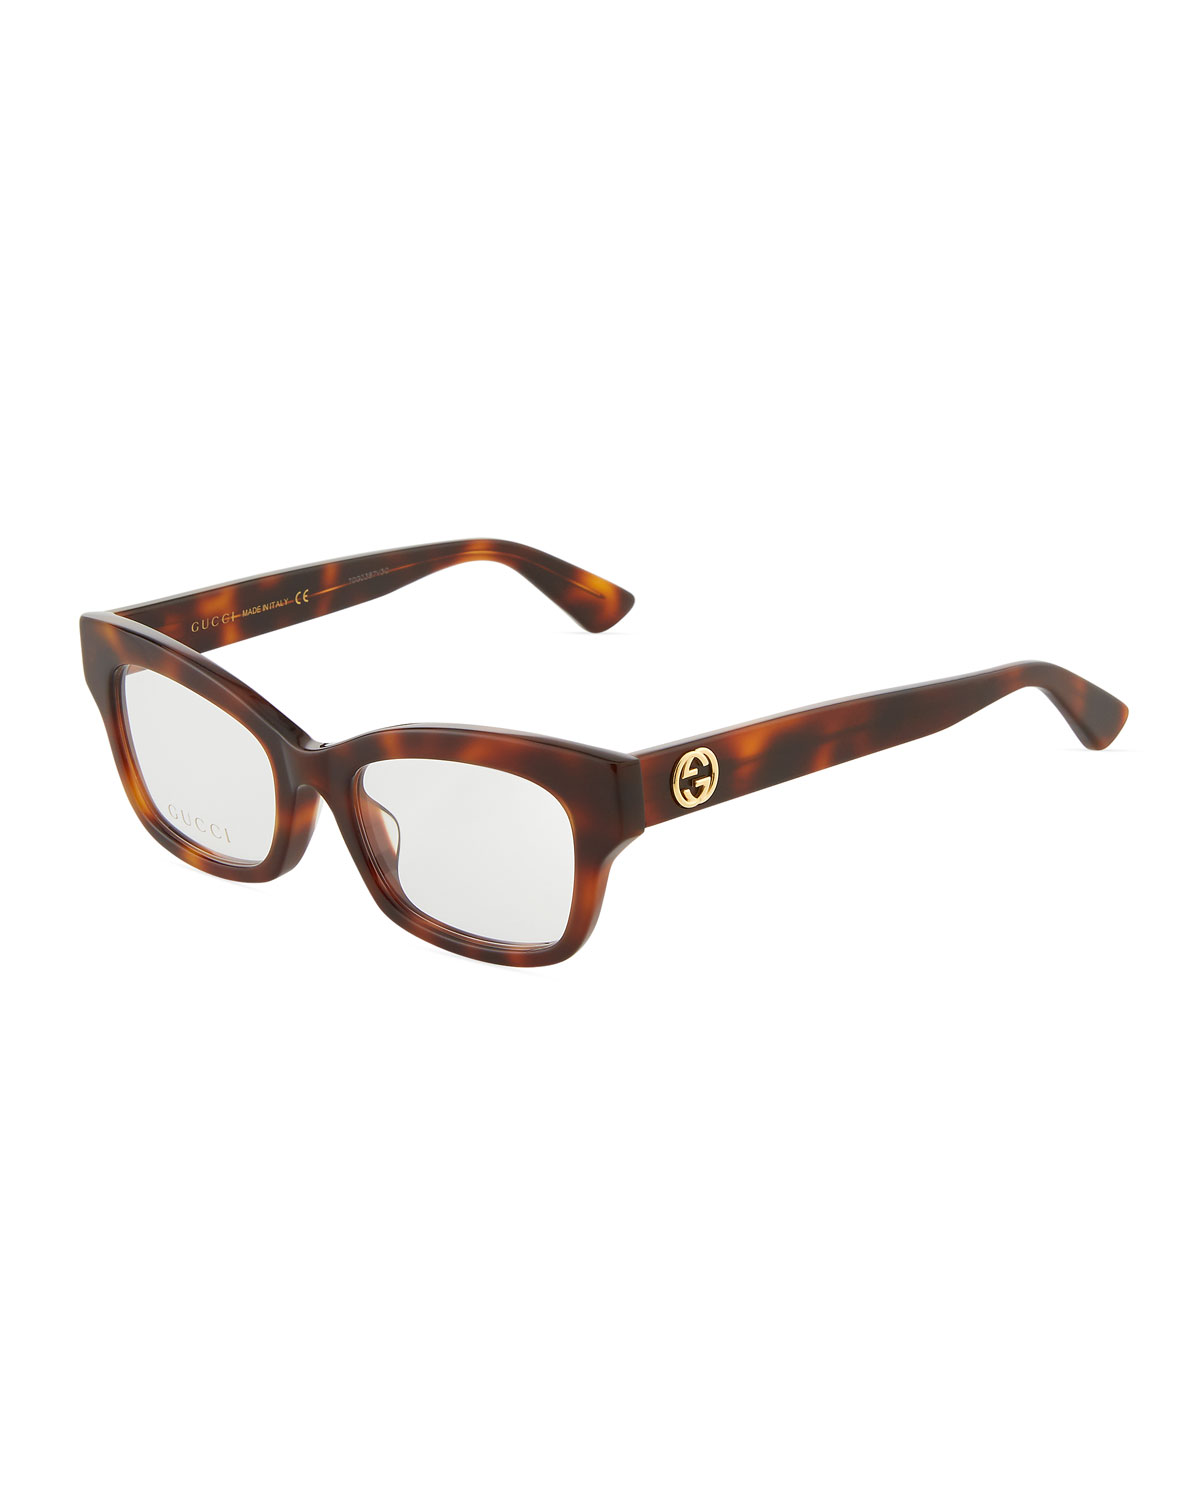 5134267e127b7 Gucci Square Cat-Eye Acetate Optical Glasses In Brown